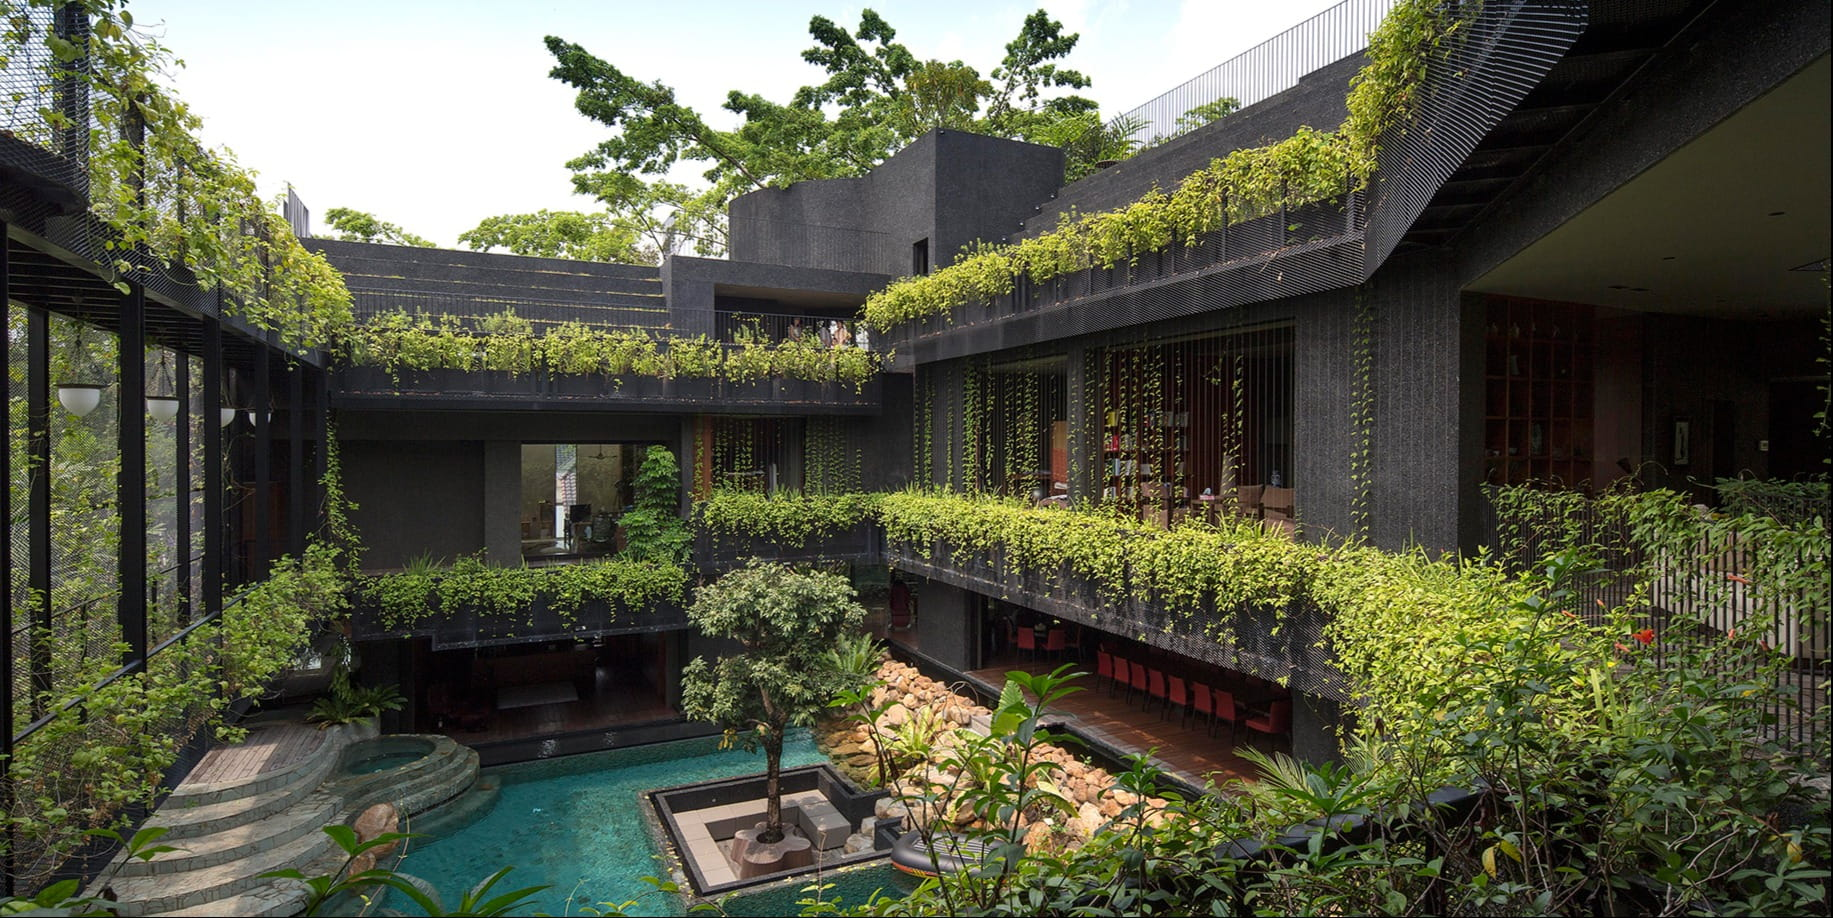 This house in Singapore features a bio pool and a cascading garden, appearing as a green oasis